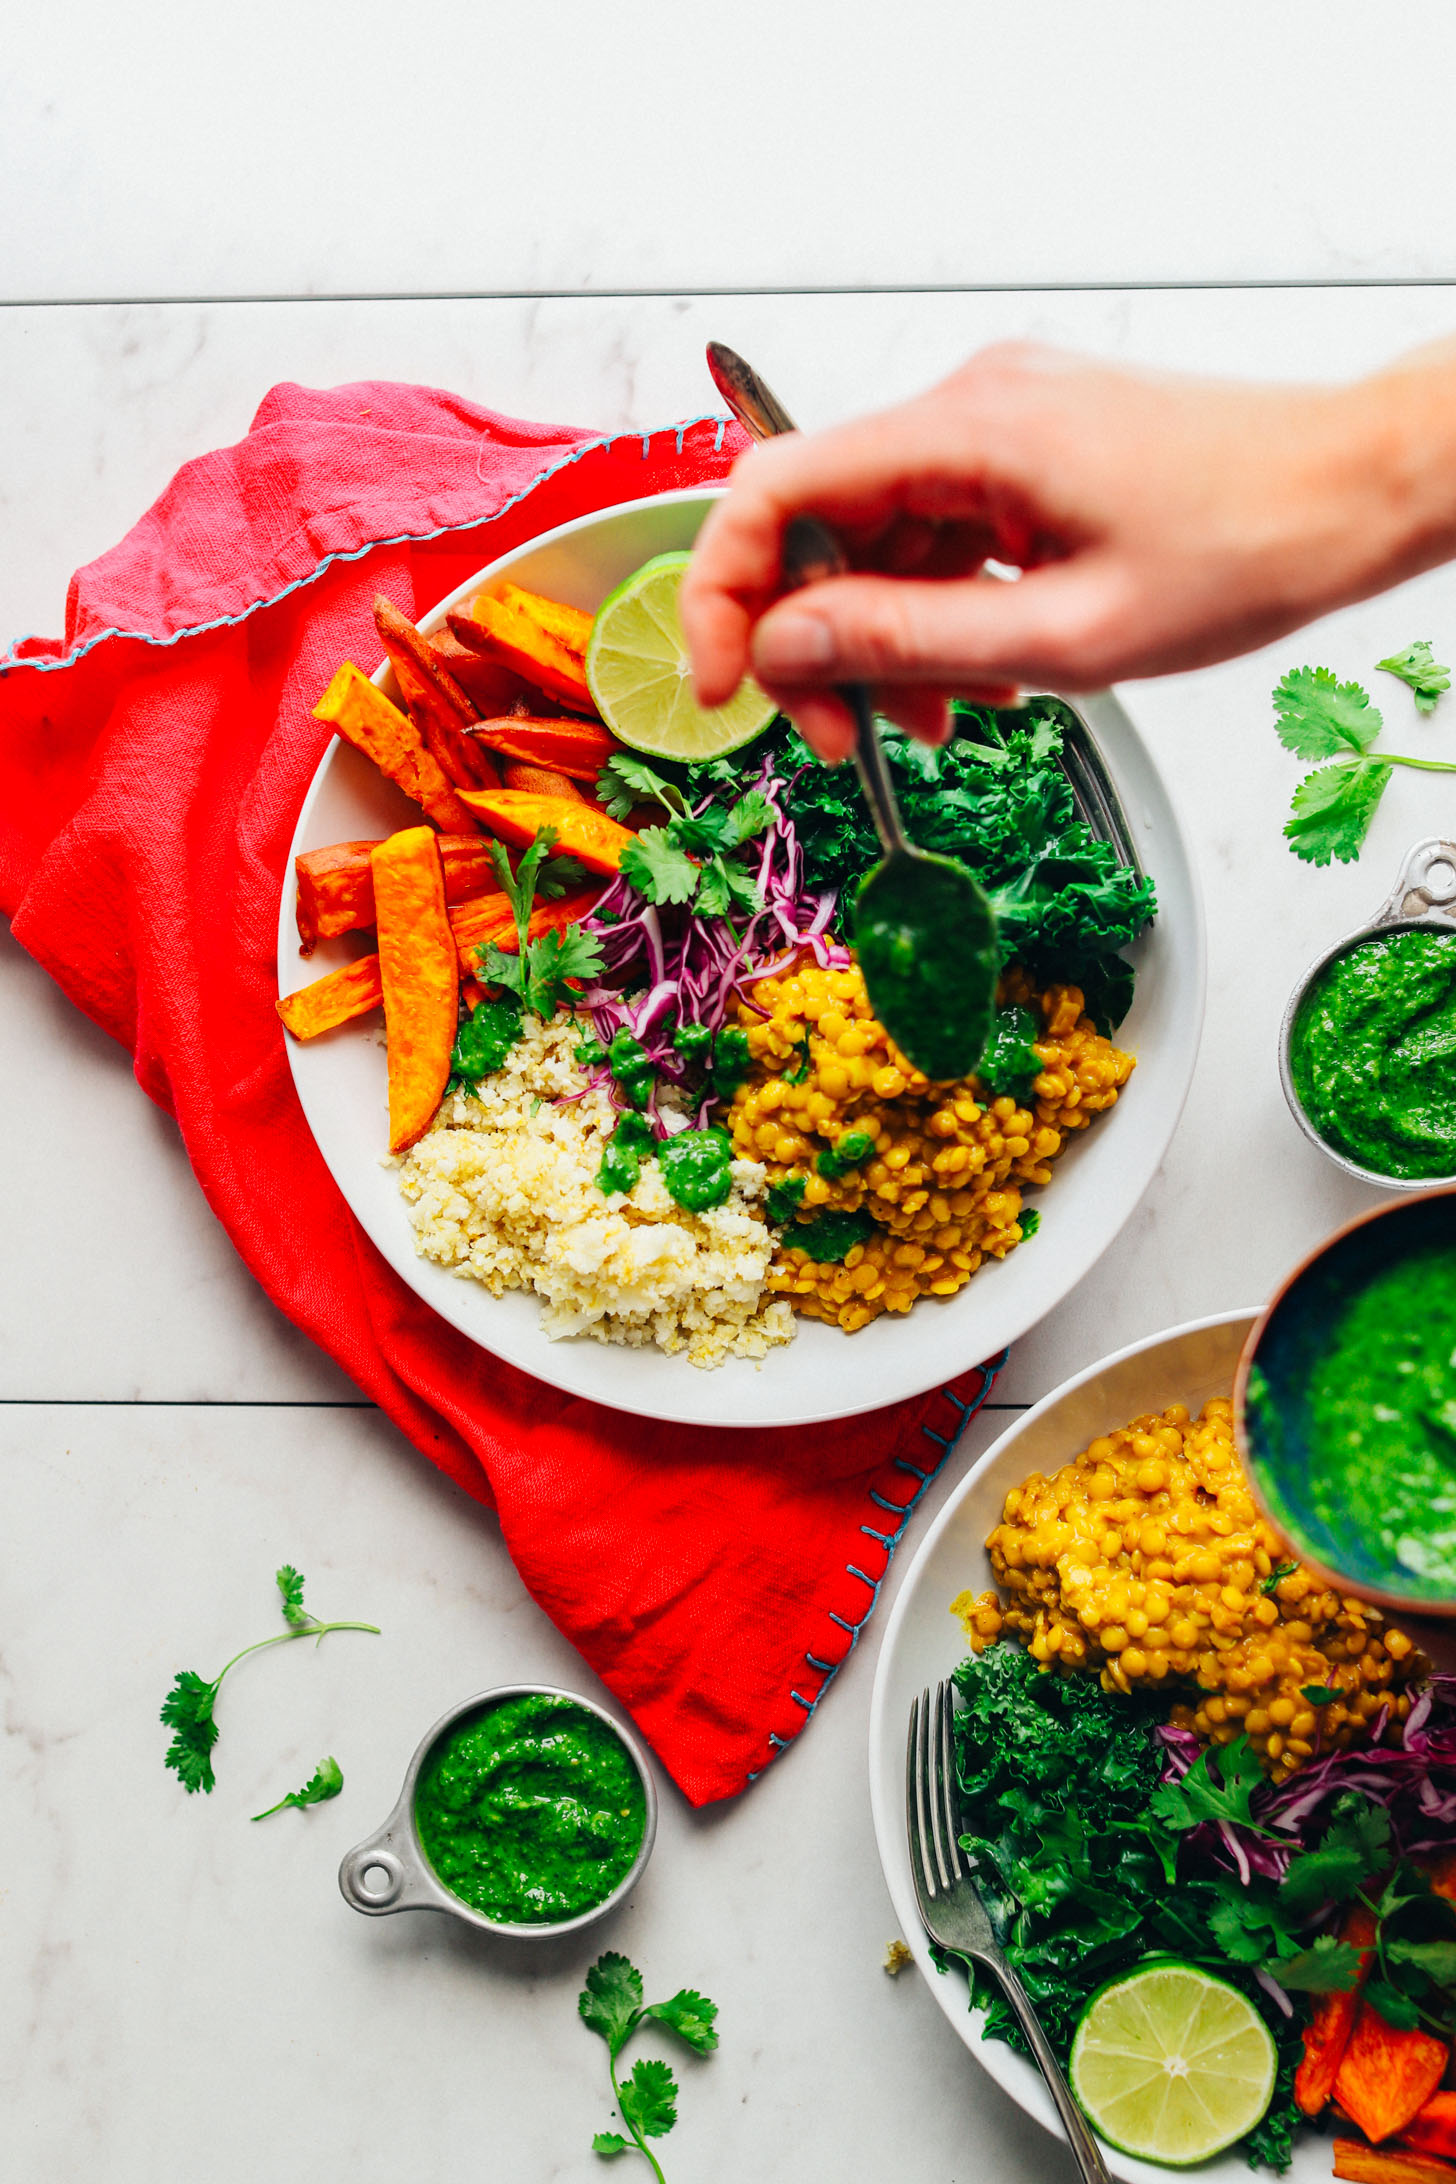 Drizzling cilantro chutney over a Curried Lentil Sweet Potato Bowl for a nourishing plant-based meal